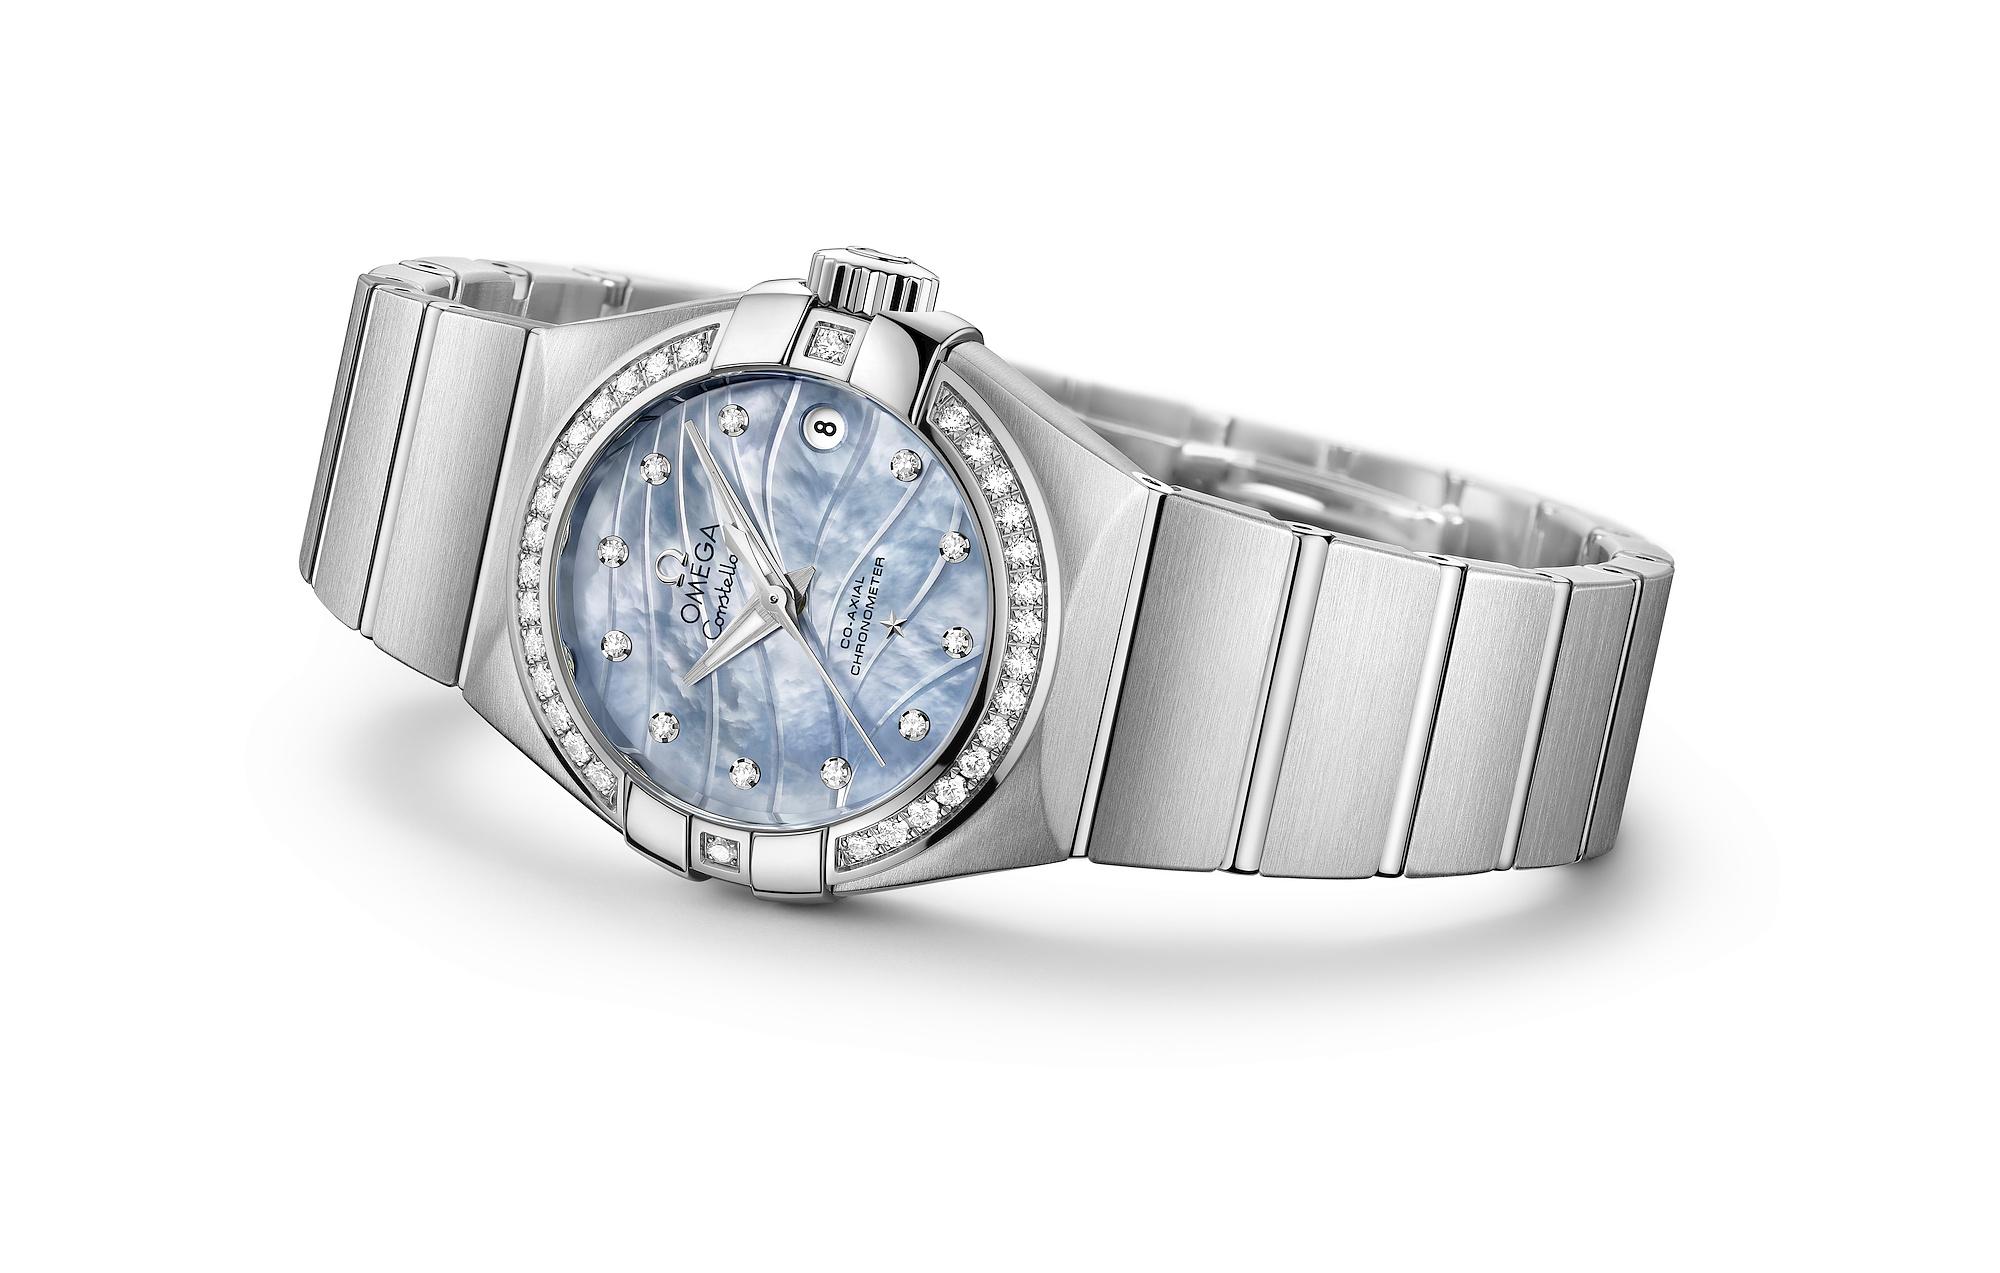 Montre Omega Constellation Pluma - Baselworld 2014 Omega